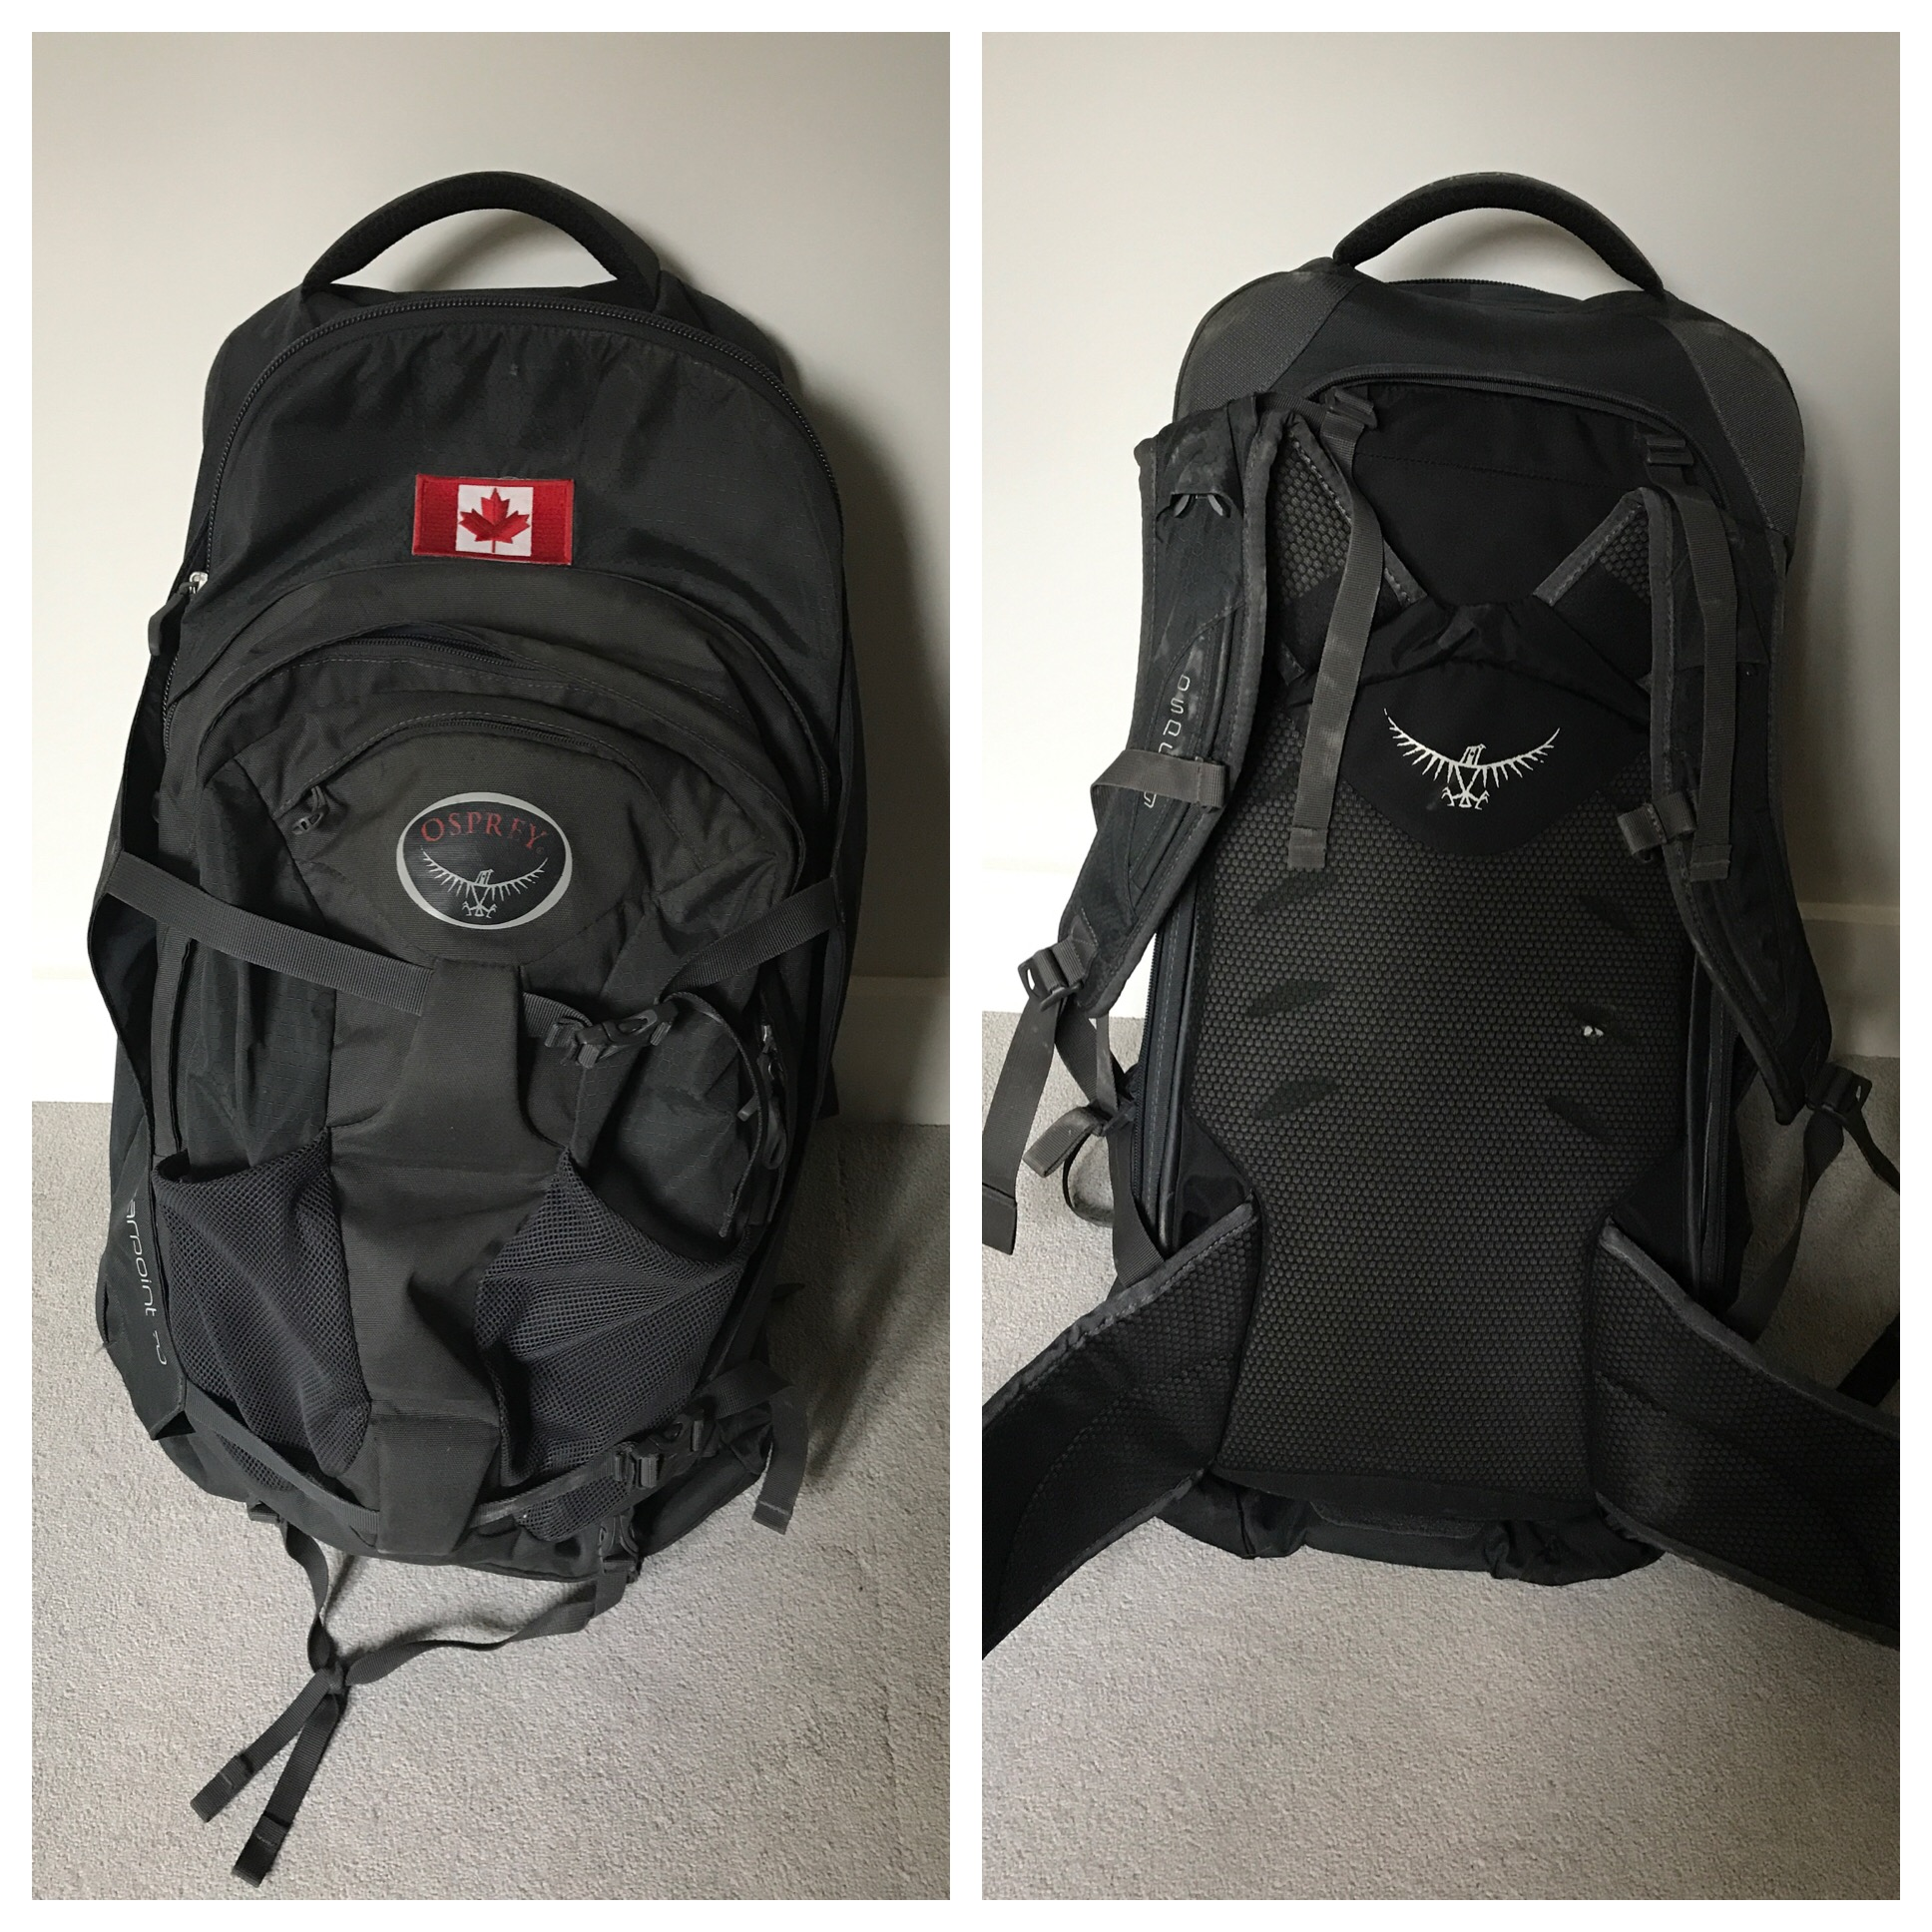 6 key reasons I ended up choosing my particular travel backpack 16a282f52fc9f